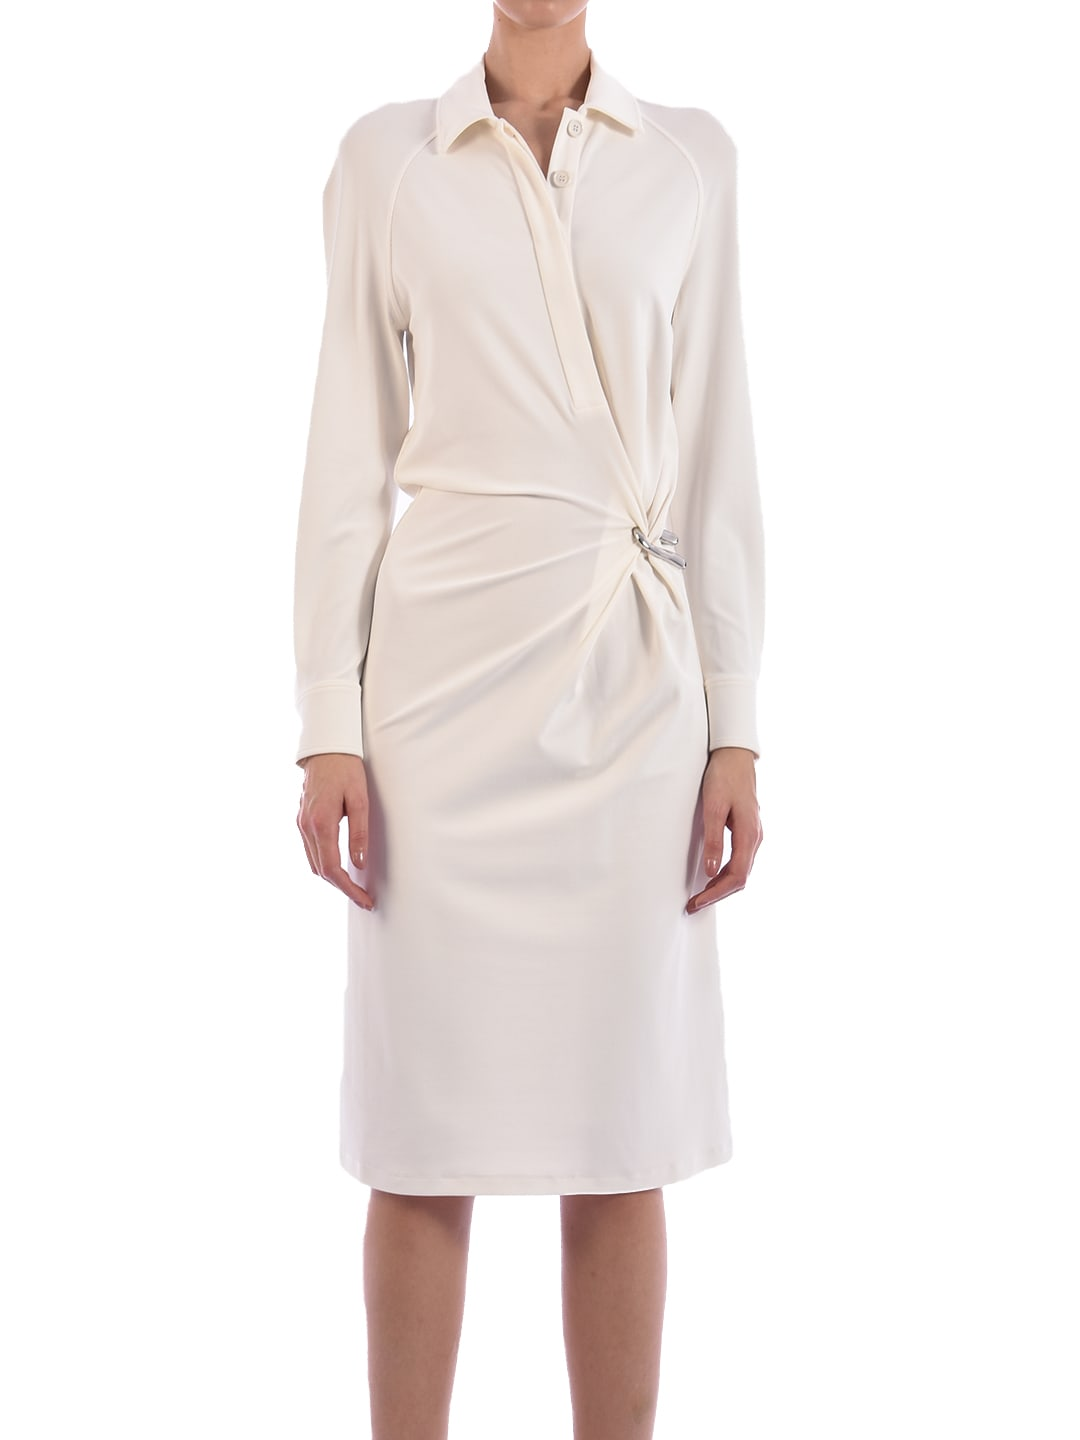 Buy Bottega Veneta Jersey Dress White online, shop Bottega Veneta with free shipping